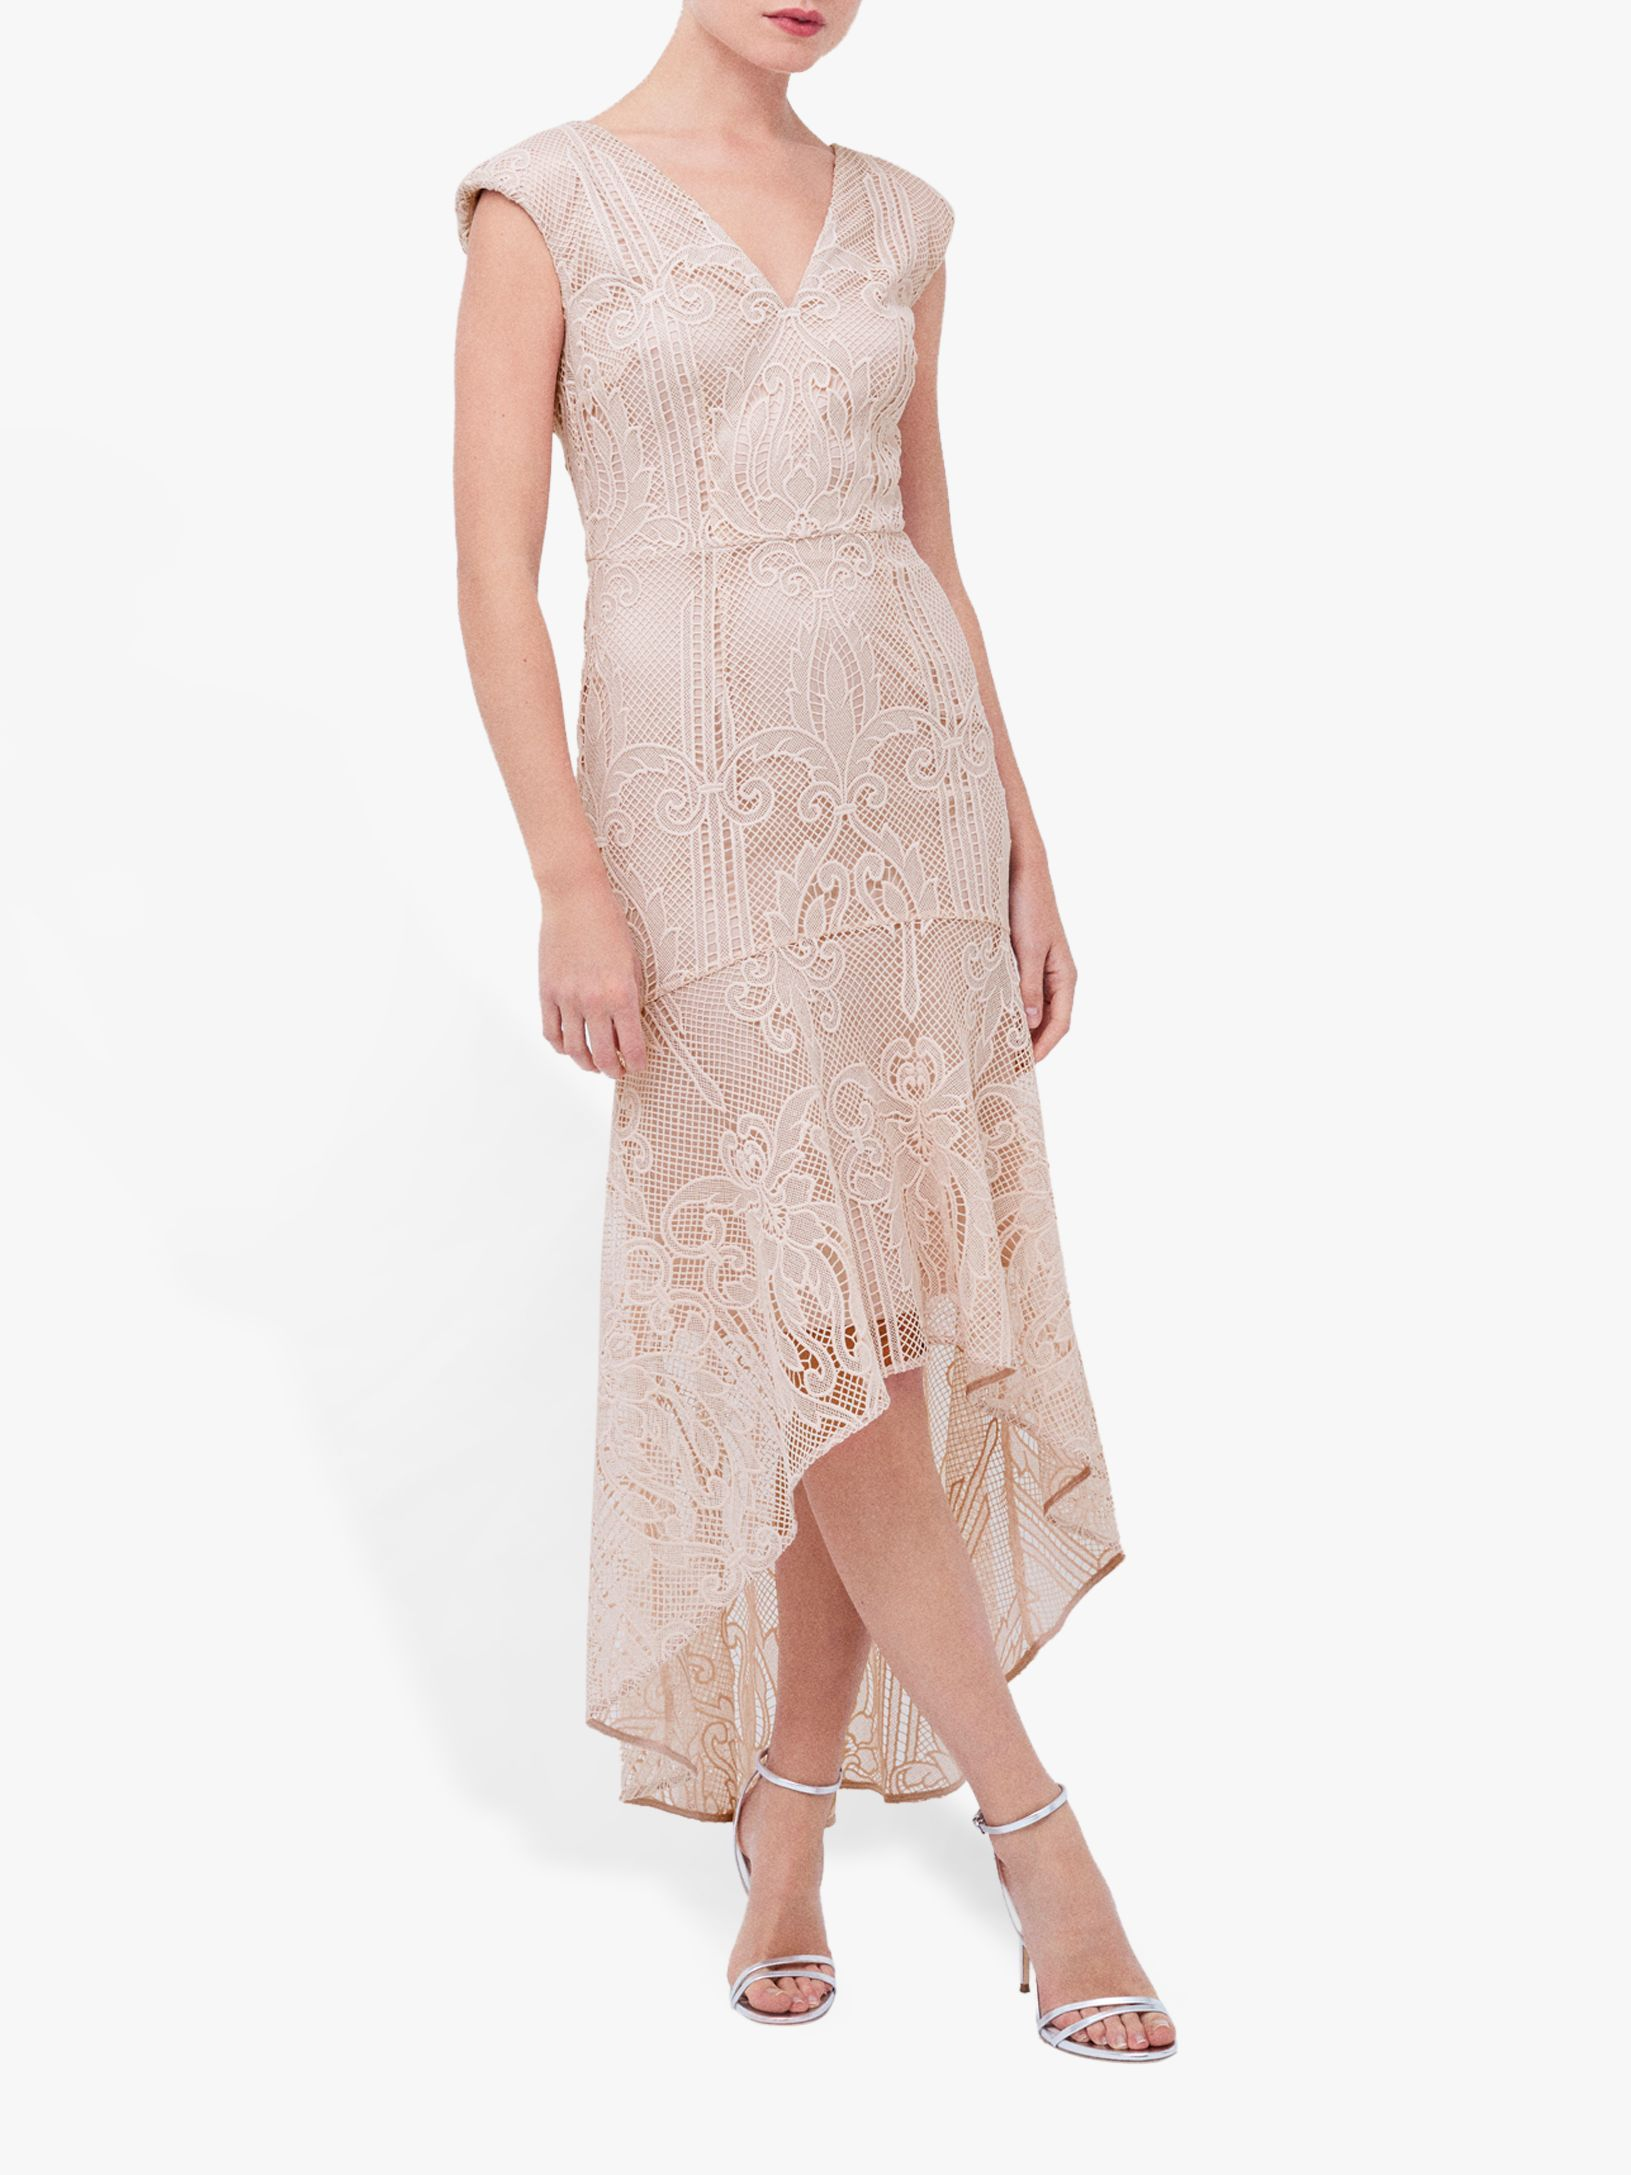 Coast Lace Peplum Dress, Blush | Lace peplum dress, Dresses